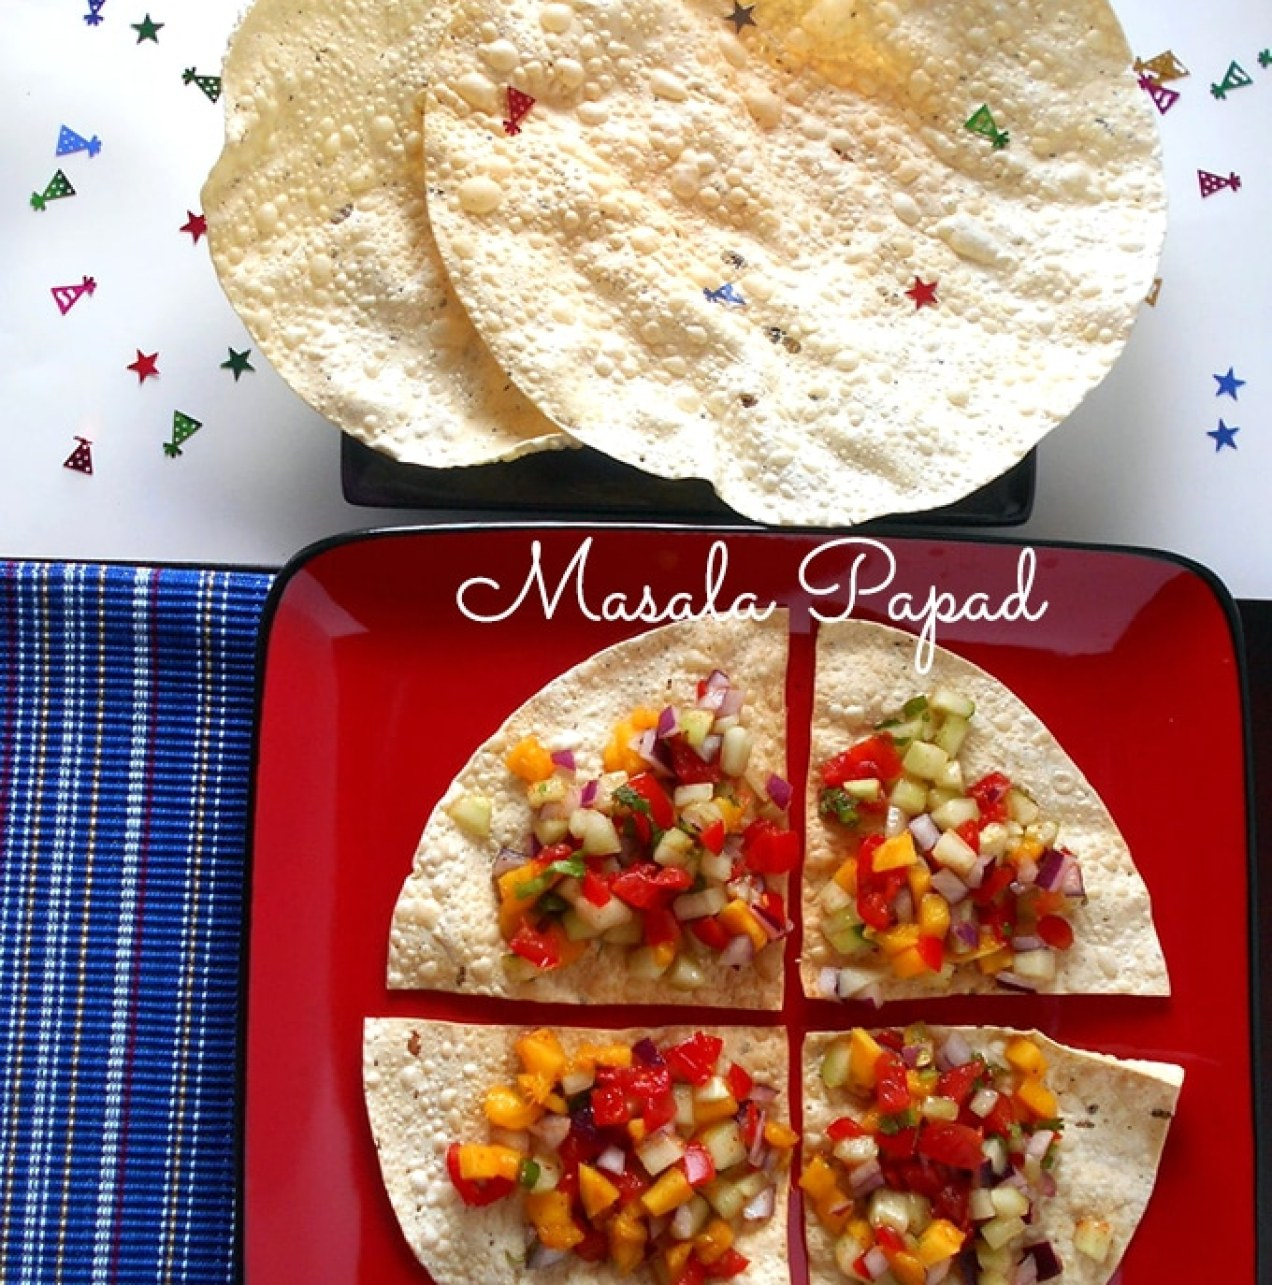 Masala Papad - Quick Appetizer common in Indian food. Take the regular papad and spruce it up with a delicious mango masala topping